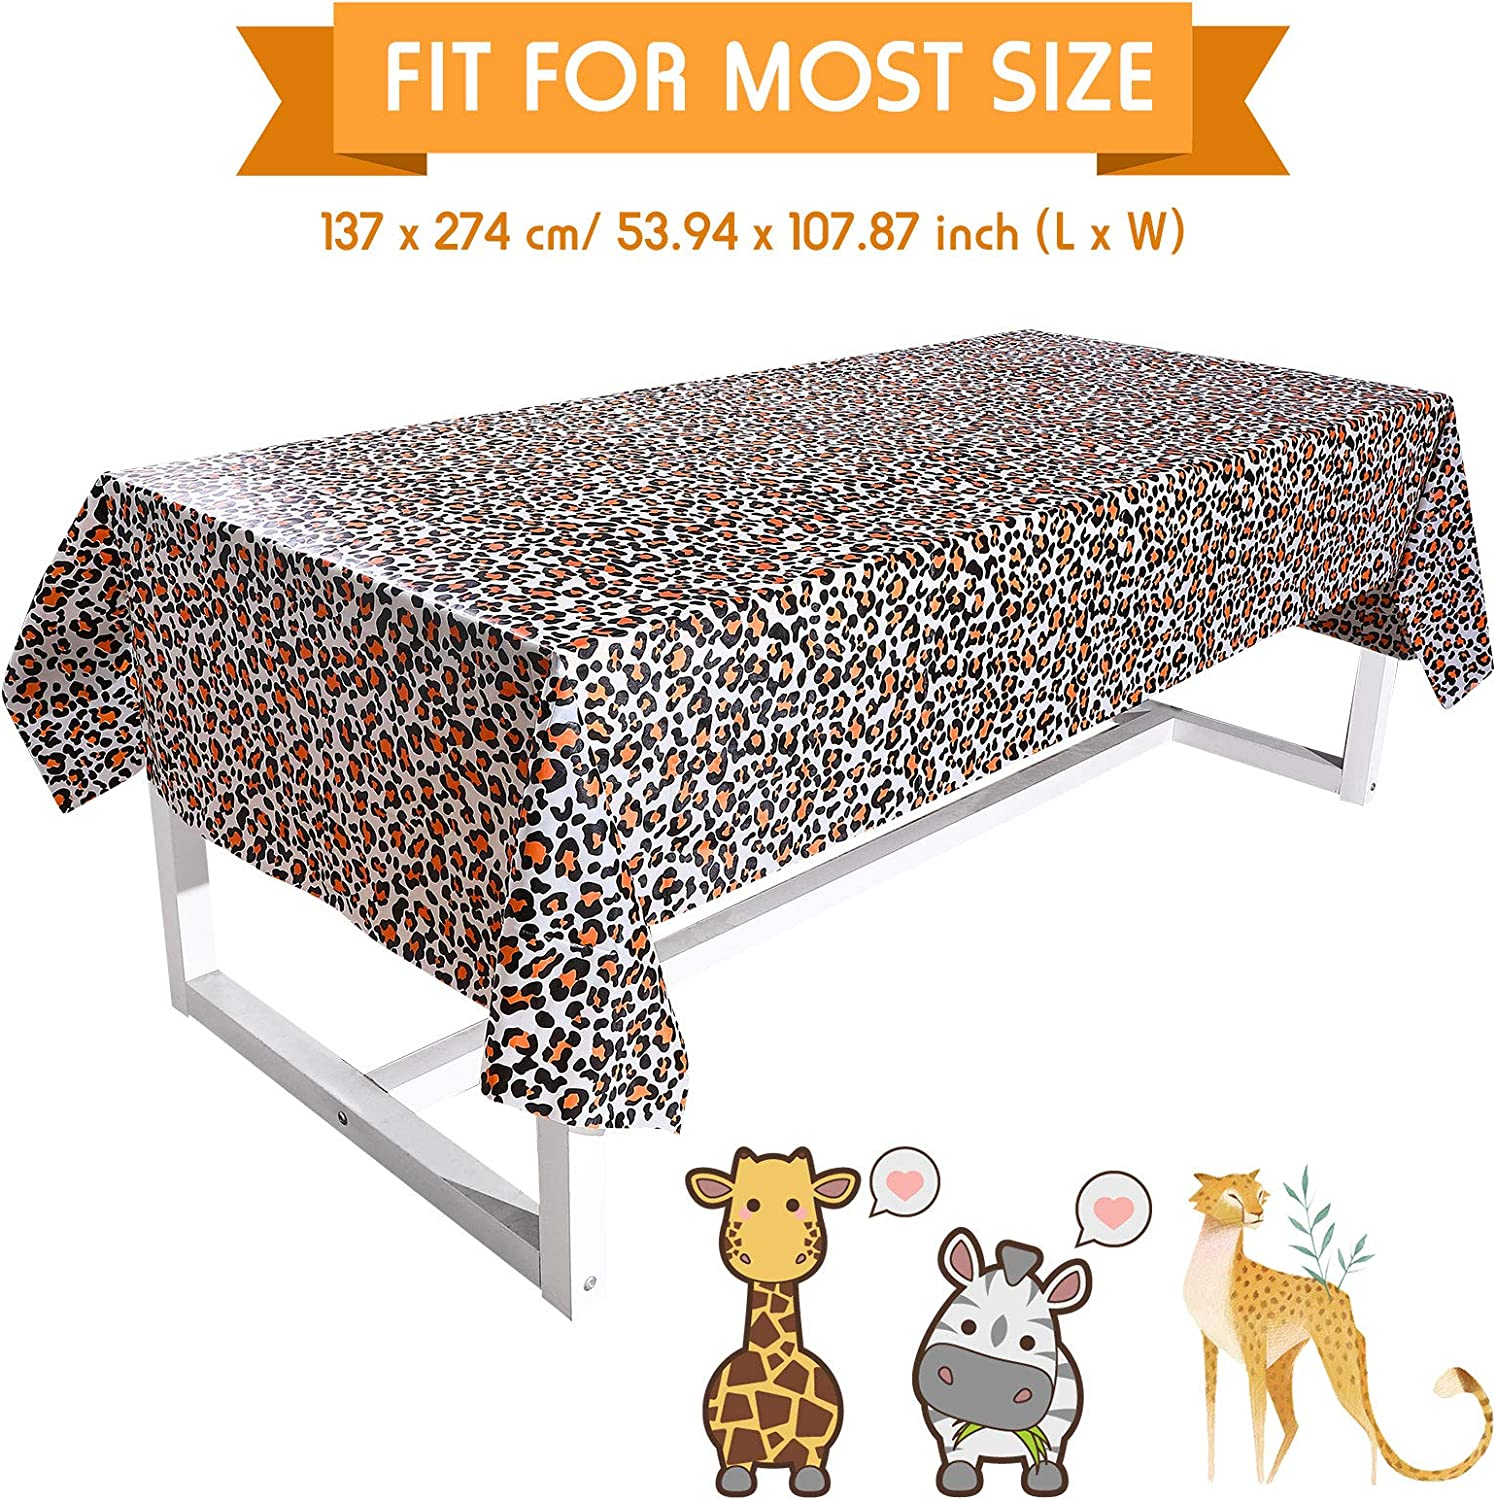 Leopard and Deer TableCovers for Birthday Animal Theme Baby Showers 3 Pieces Zoo Print Table Cover Animal Safari Theme Table Cover Jungle Animal Table Cover Zebra Zoo Jungle Safari Themed Party